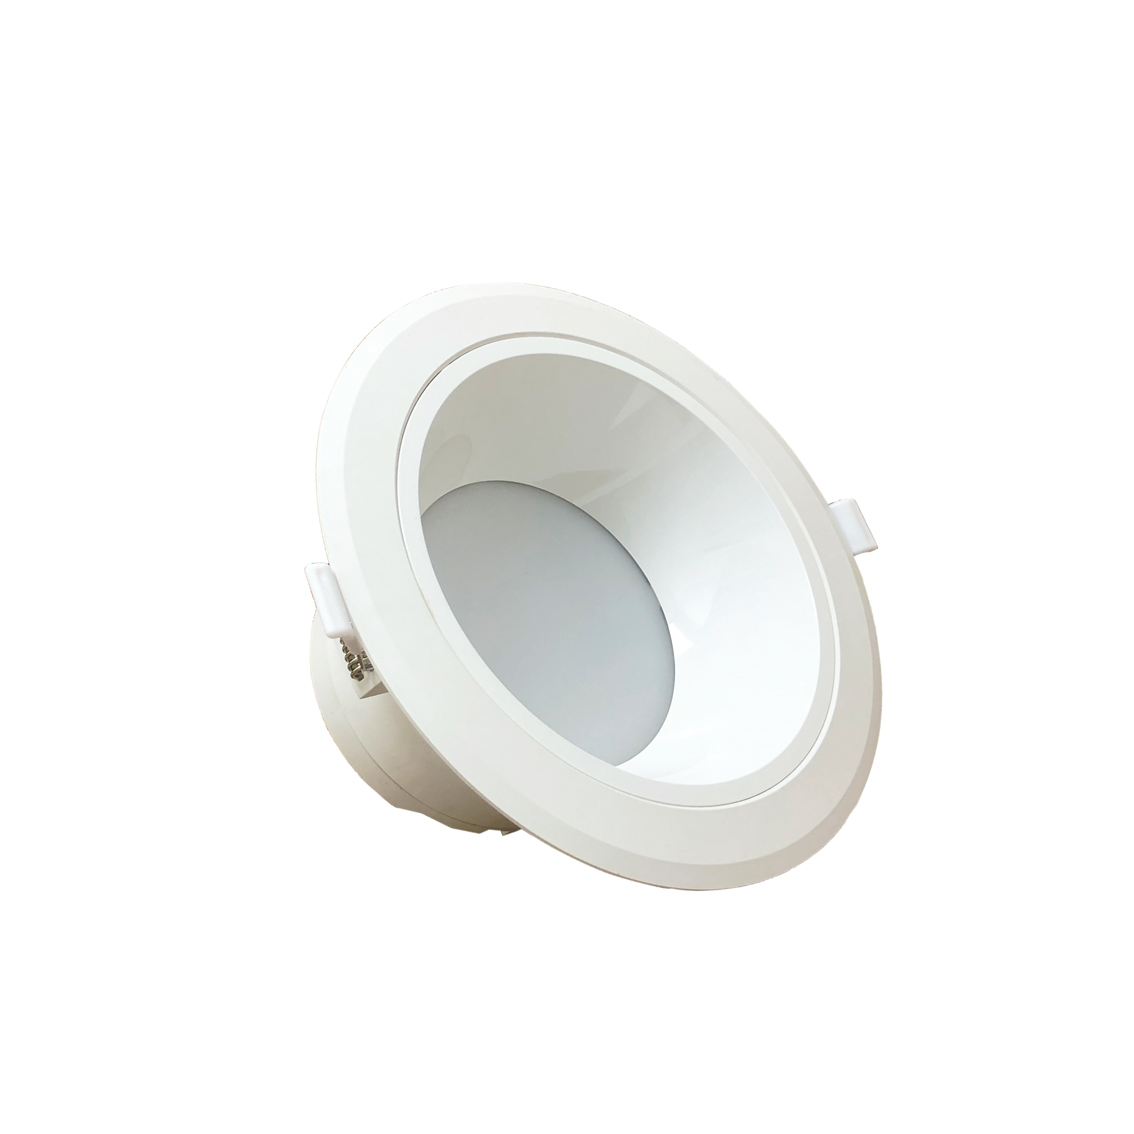 Led spotlight downlight 20W white round diameter 189mm Fi38-20W 6400K